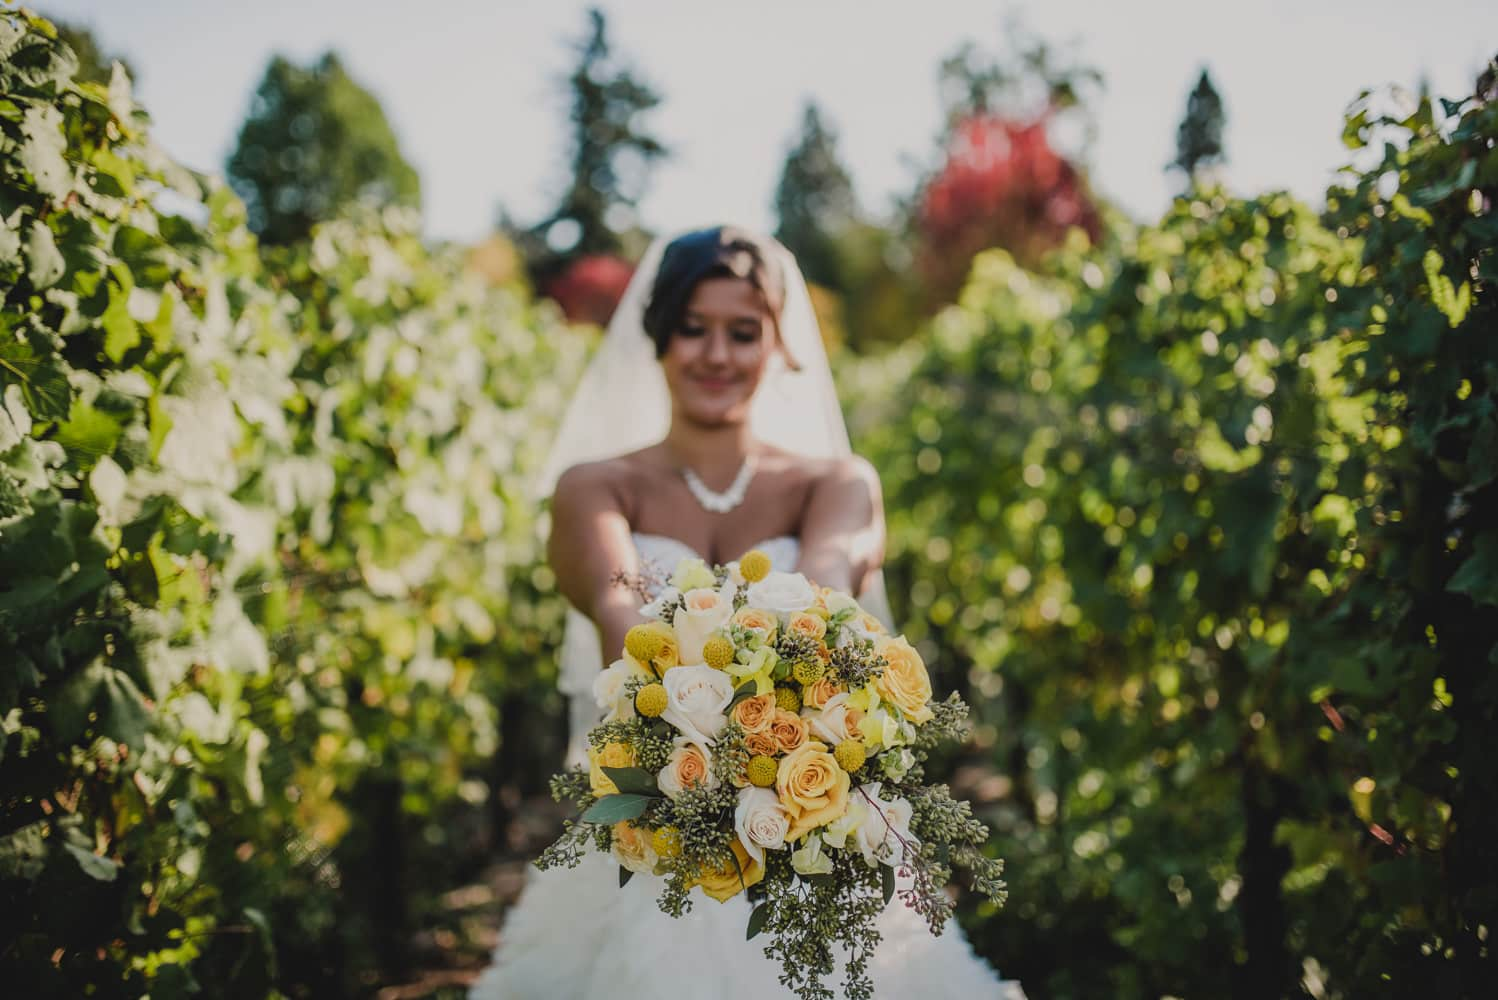 Photography of a bride holding her bouquet in a vineyard during her wedding at McMenamins Edgefield in Portland, Oregon.